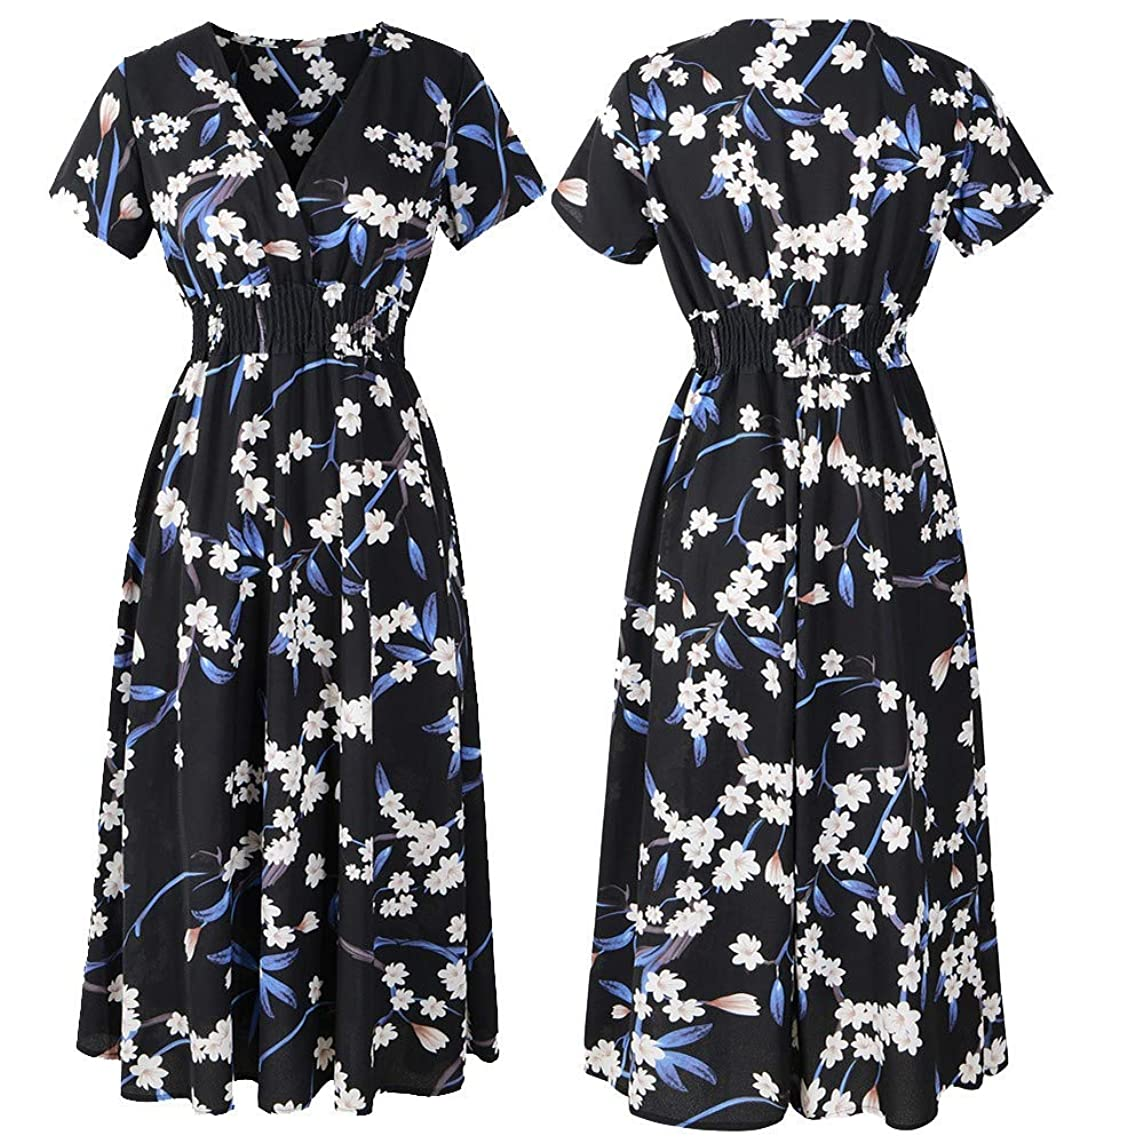 Neferlife v-Neck Dresses for Womens Holiday Floral Print Dress Ladies Summer Beach Party Dress